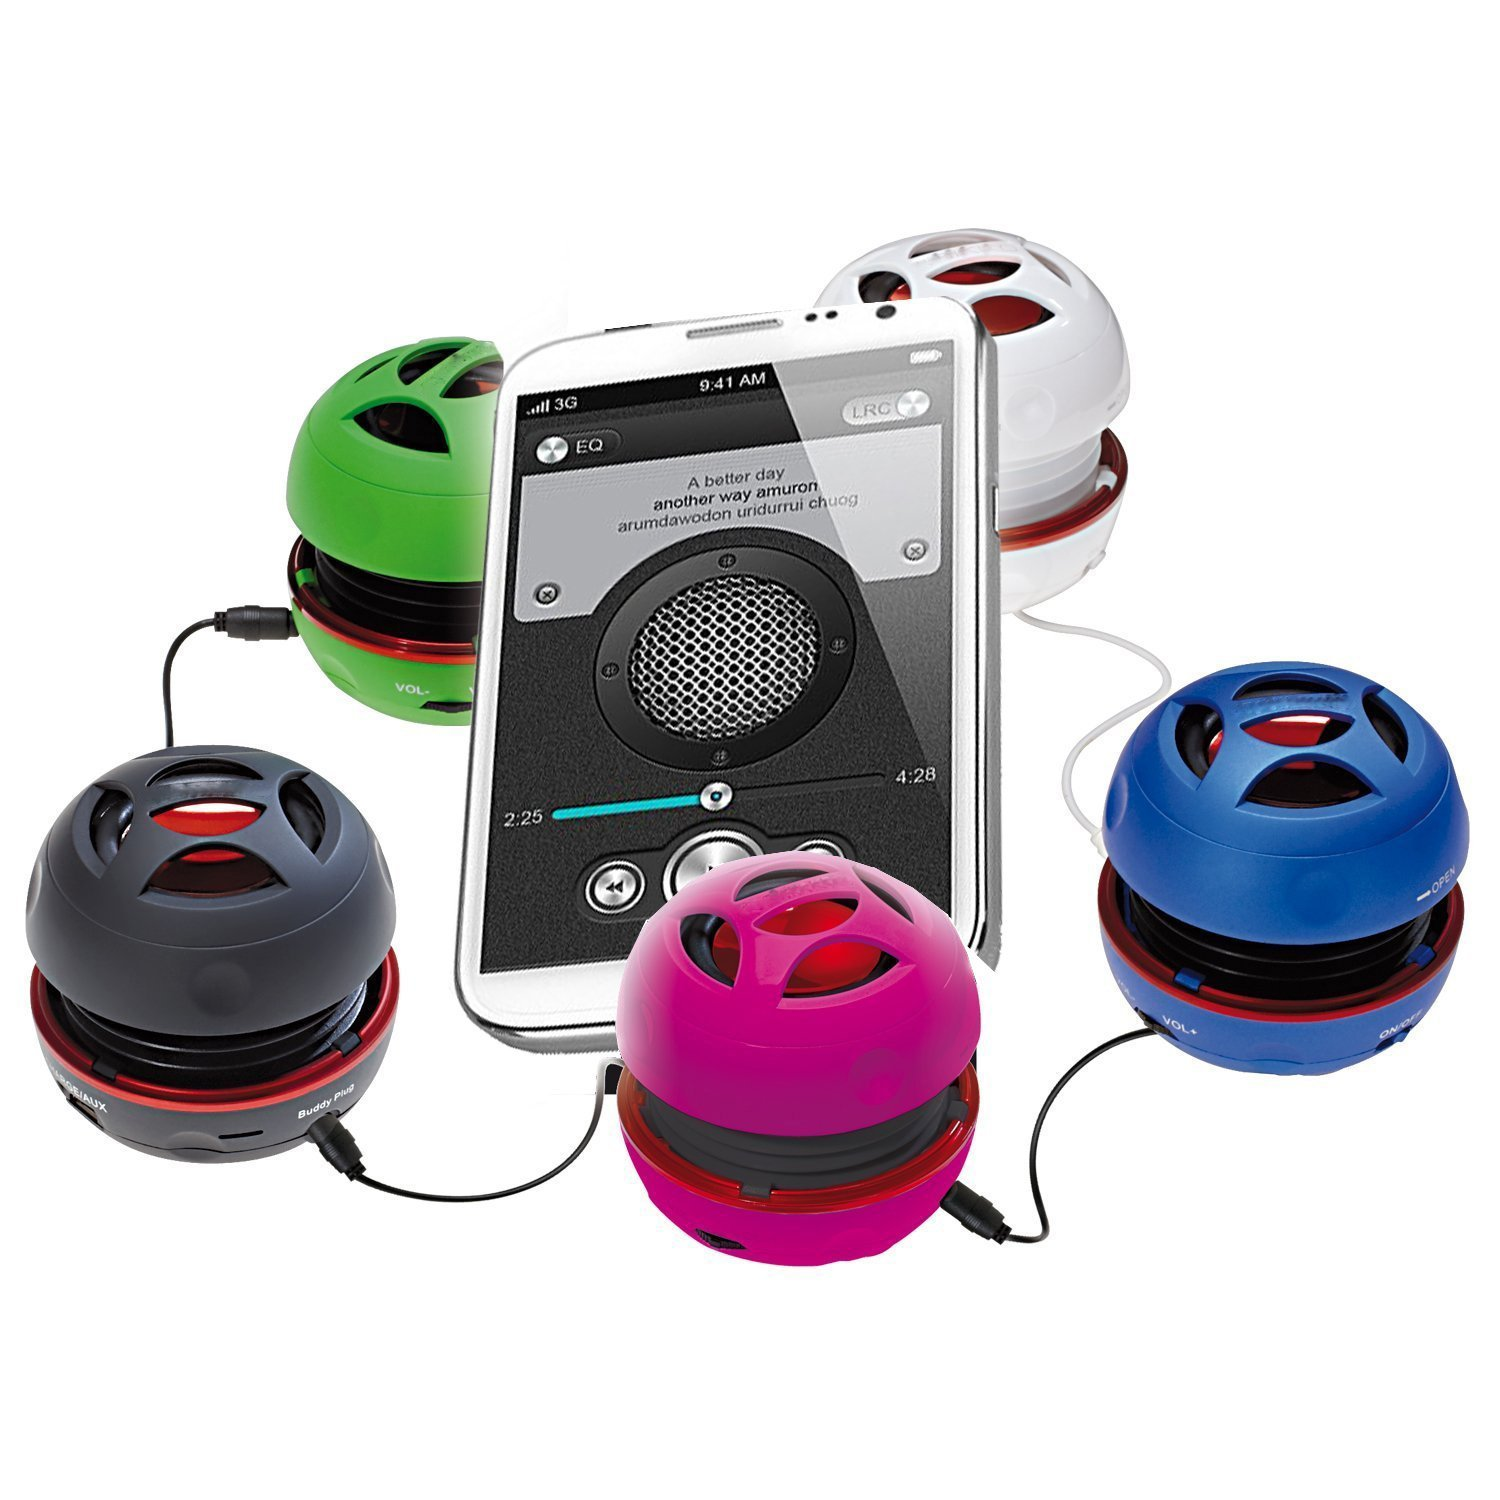 I-VOM Bass+ Mini Portable Speaker with 2YR Guarantee with Rechargeable Battery for iPhone7 / iPad/iPod / MP3 Player/Laptop/iPhone/Computer - (Black,Red) by RIITY